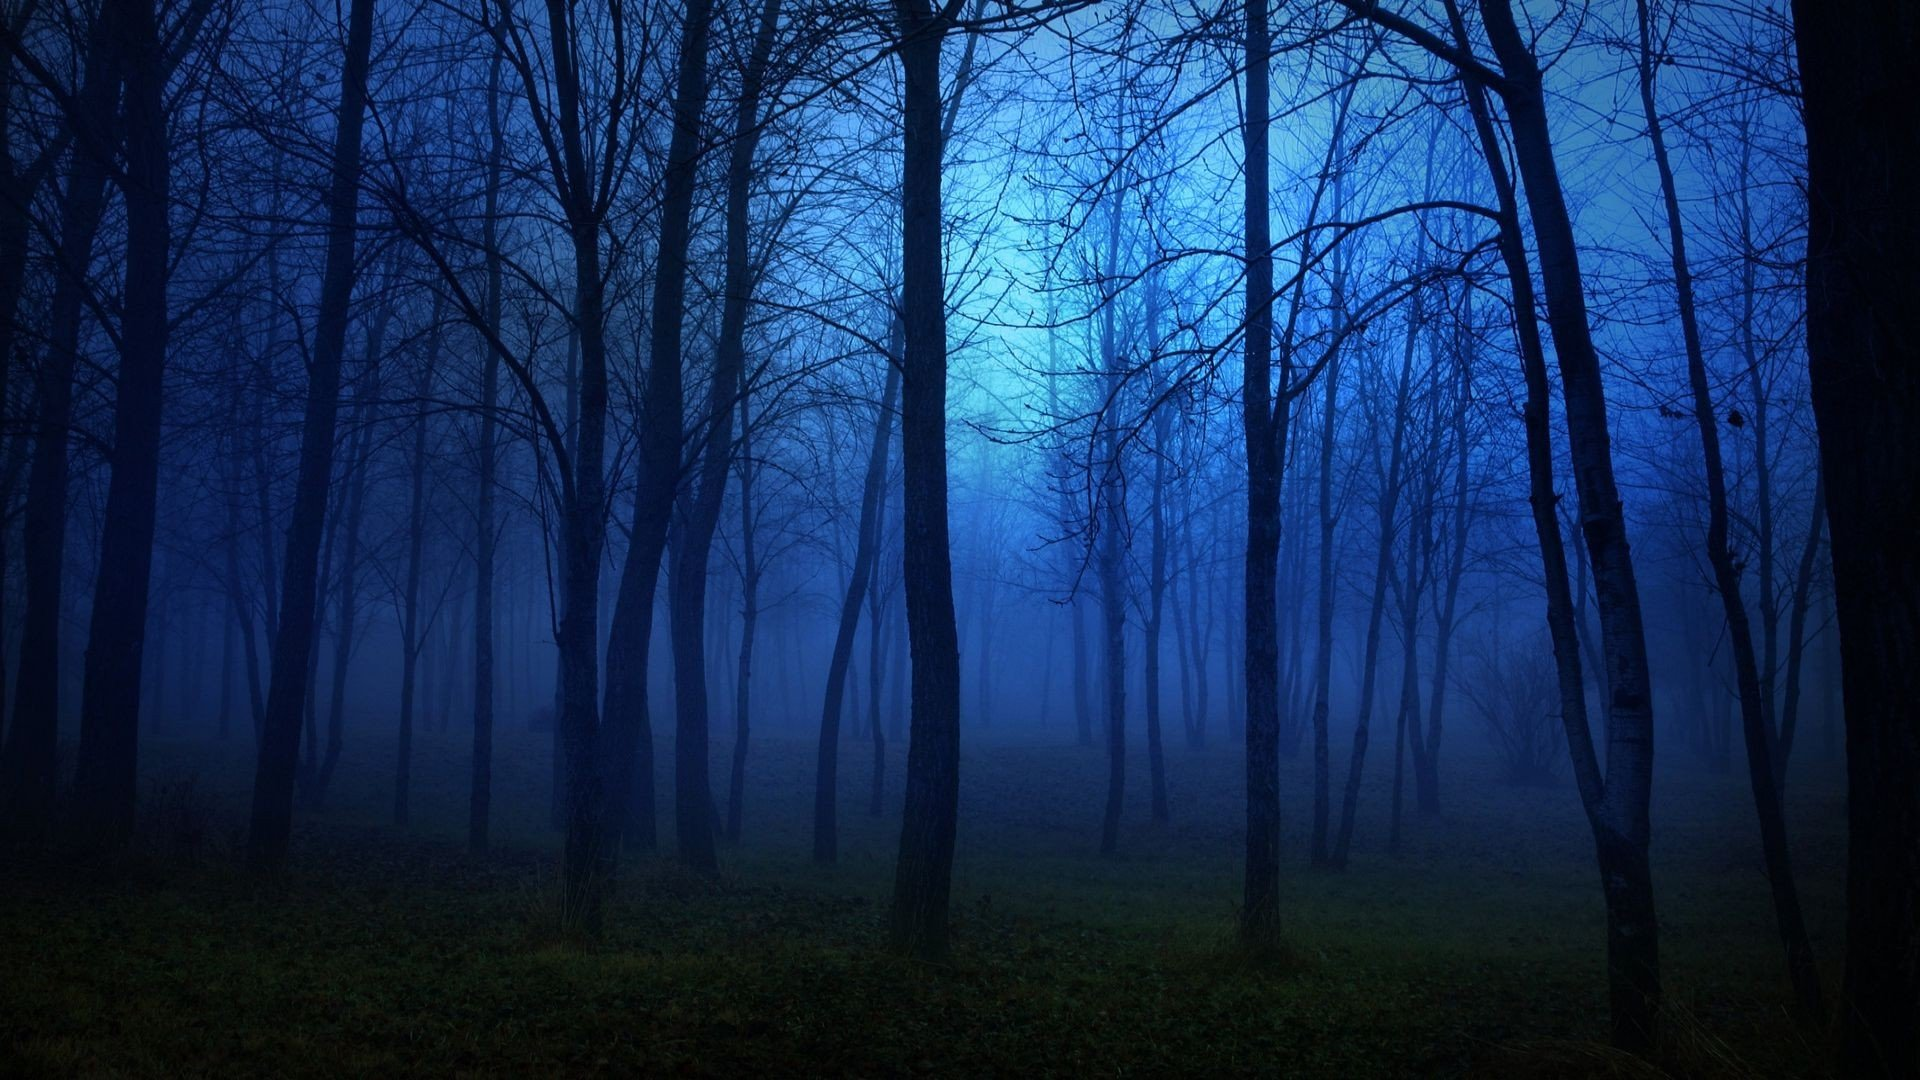 Forest Nature Tree Landscape Night Fog Mist Dark Spooky